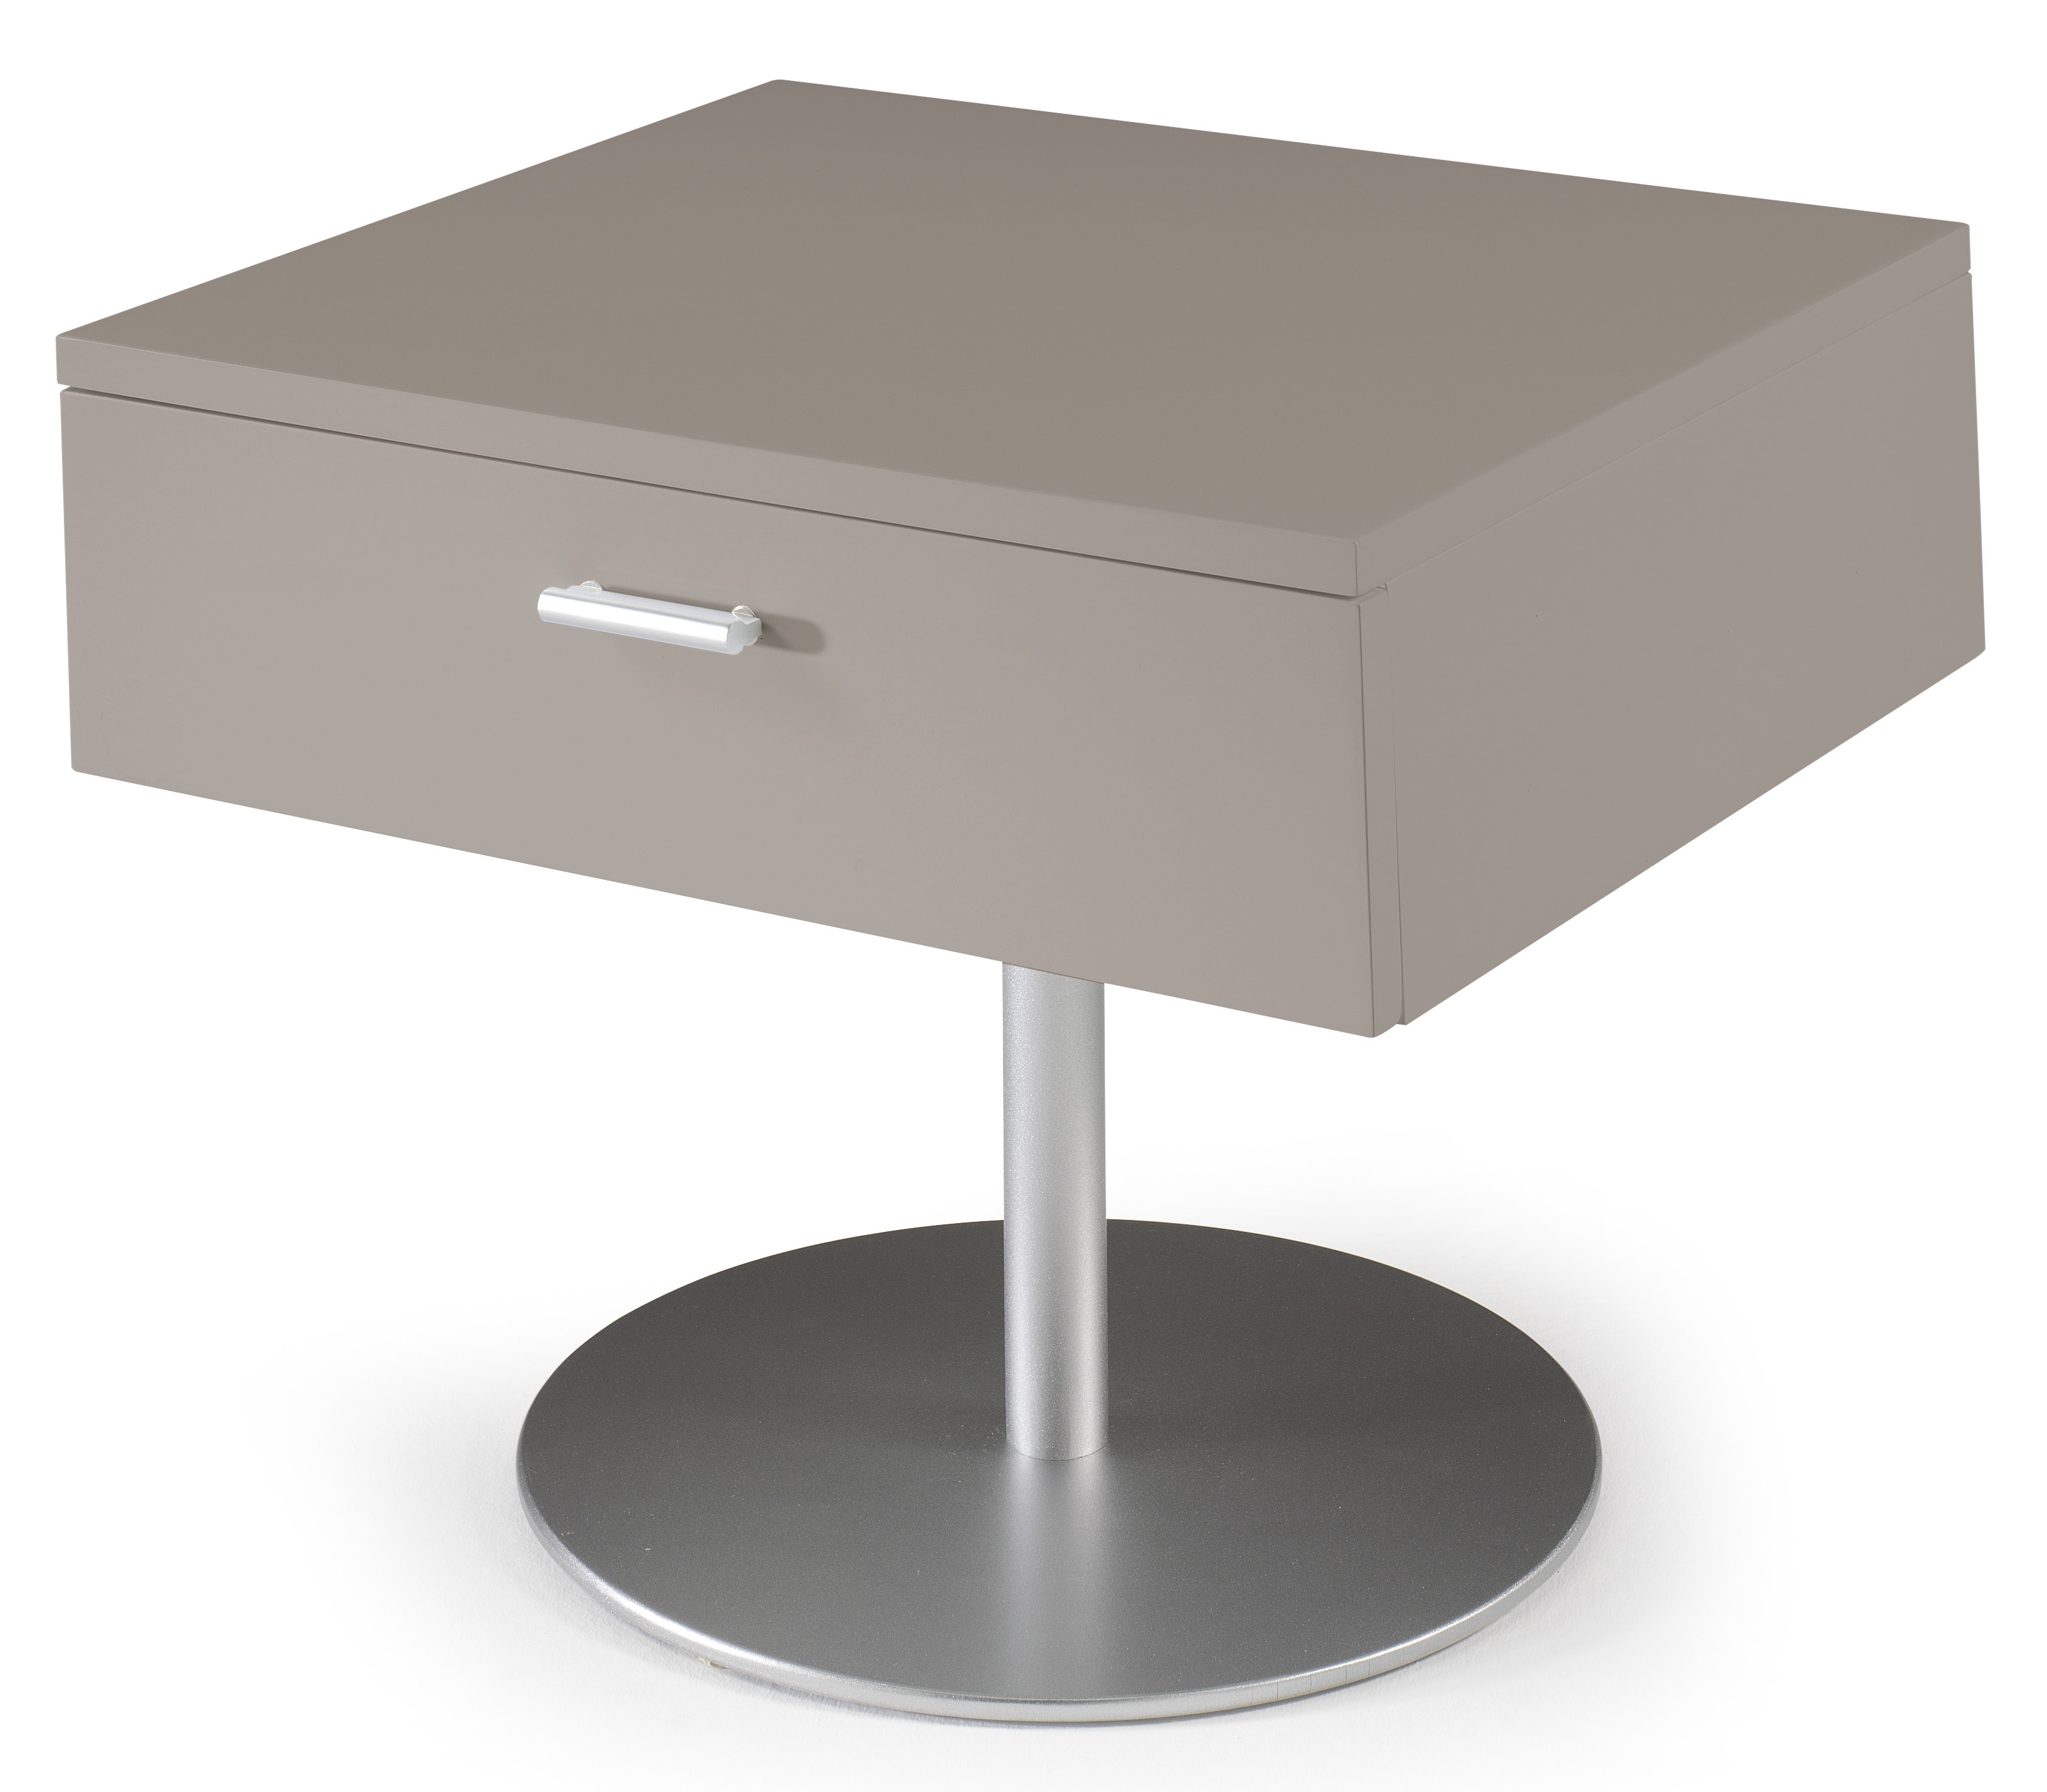 table de chevet design taupe laqu kara lestendancesfr